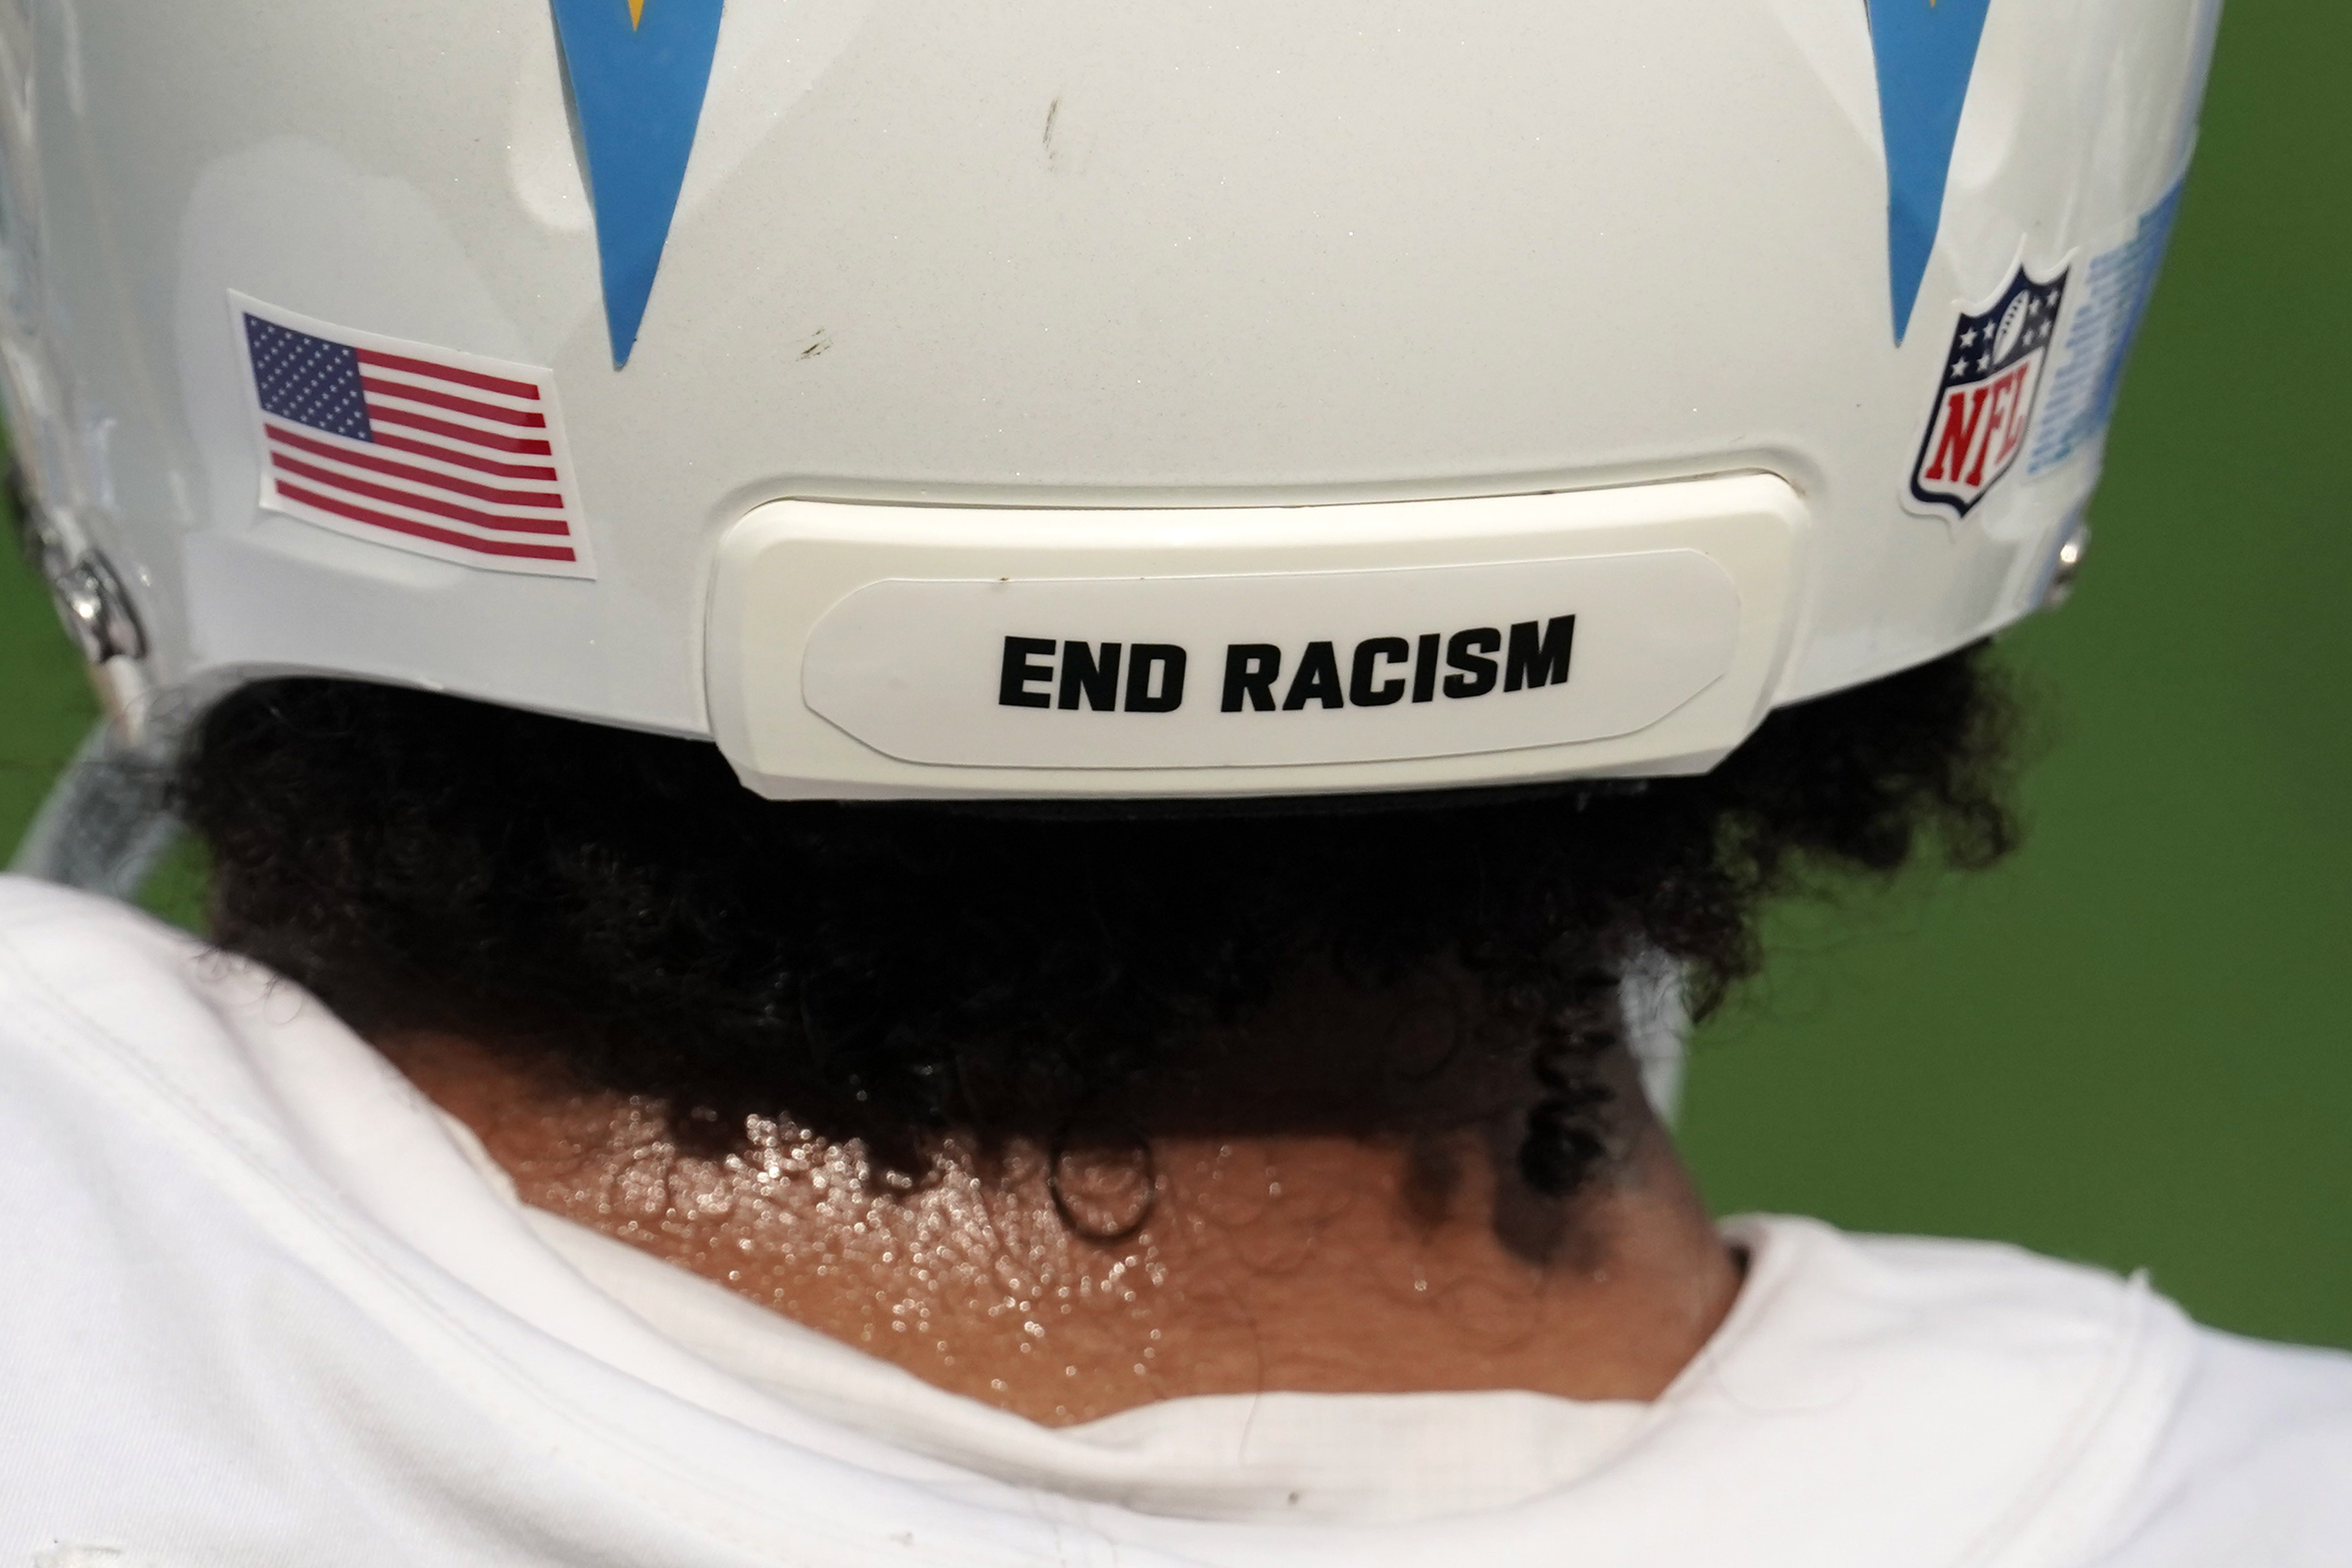 Sep 27, 2020; Inglewood, California, USA; Los Angeles Chargers linebacker Emeke Egbule (51) wears the words End Racism on the back of his helmet against the Carolina Panthers at SoFi Stadium. The Panthers defeated the Chargers 21-16. Mandatory Credit: Kirby Lee-USA TODAY Sports - 14993078